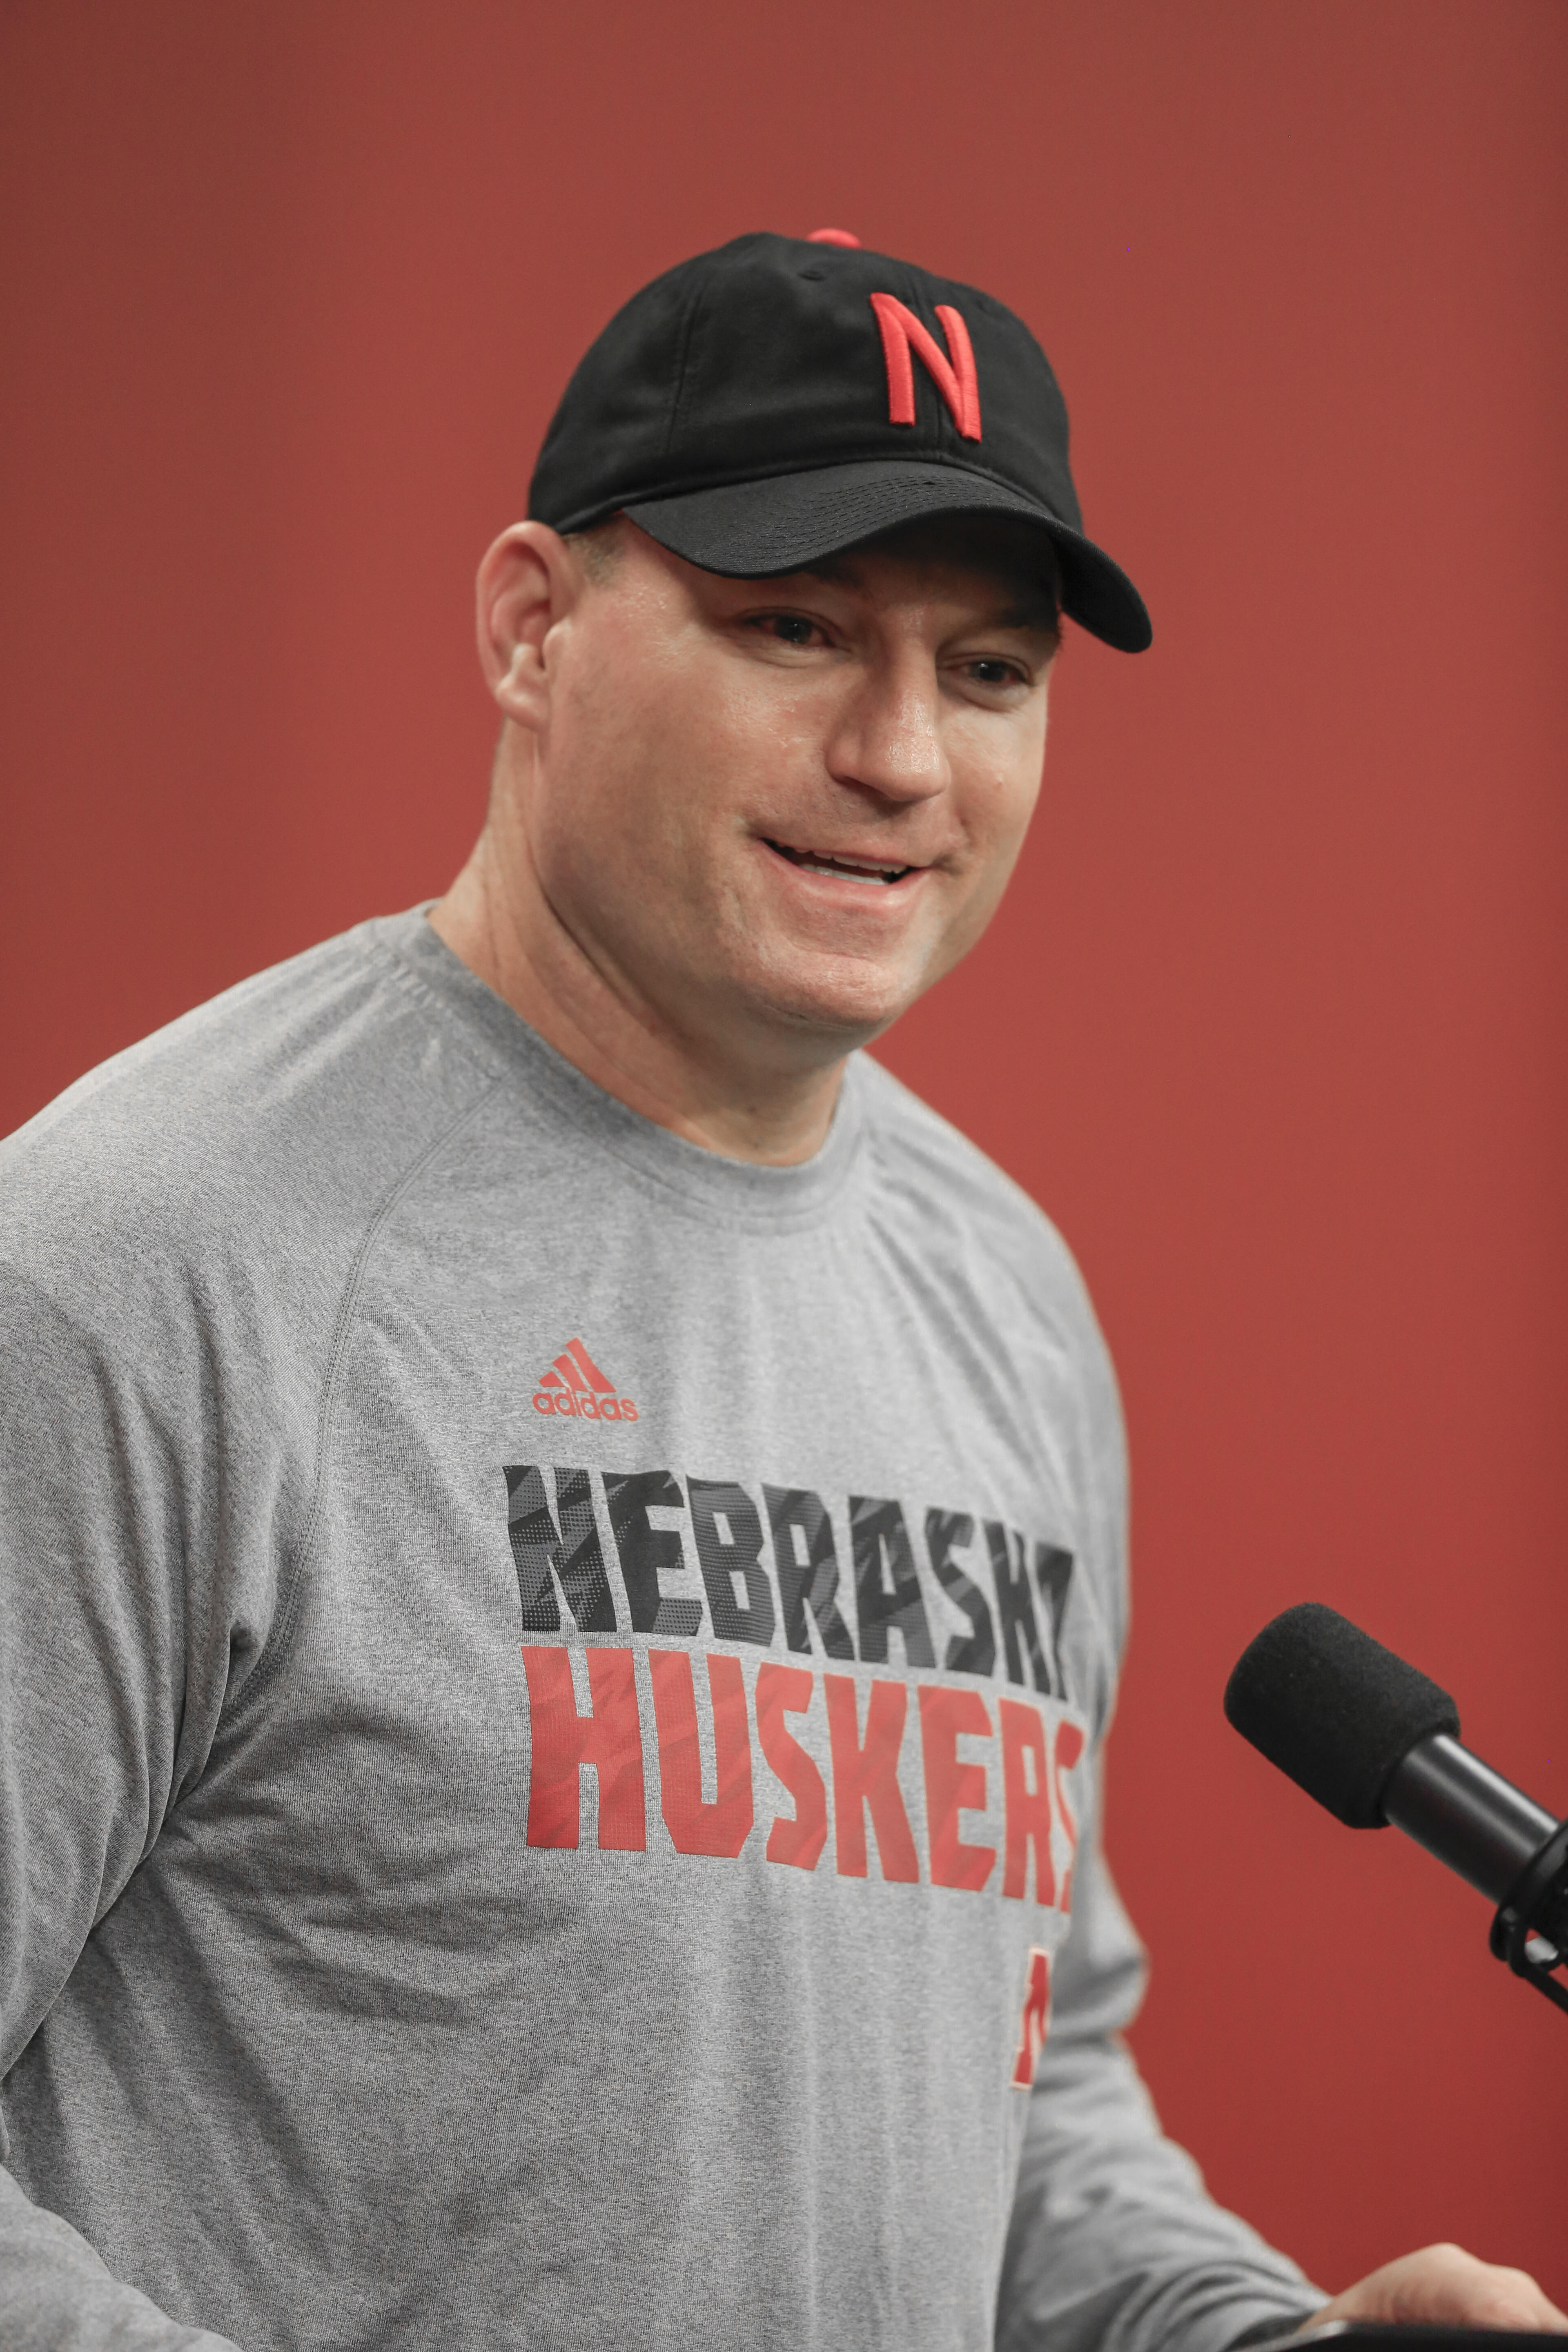 New Nebraska defensive line coach John Parrella speaks at a news conference in Lincoln, Neb., Wednesday, March 2, 2016. Parrella, a former Nebraska defensive tackle under Tom Osborne, played 12 years for three NFL teams, including the San Diego Chargers w